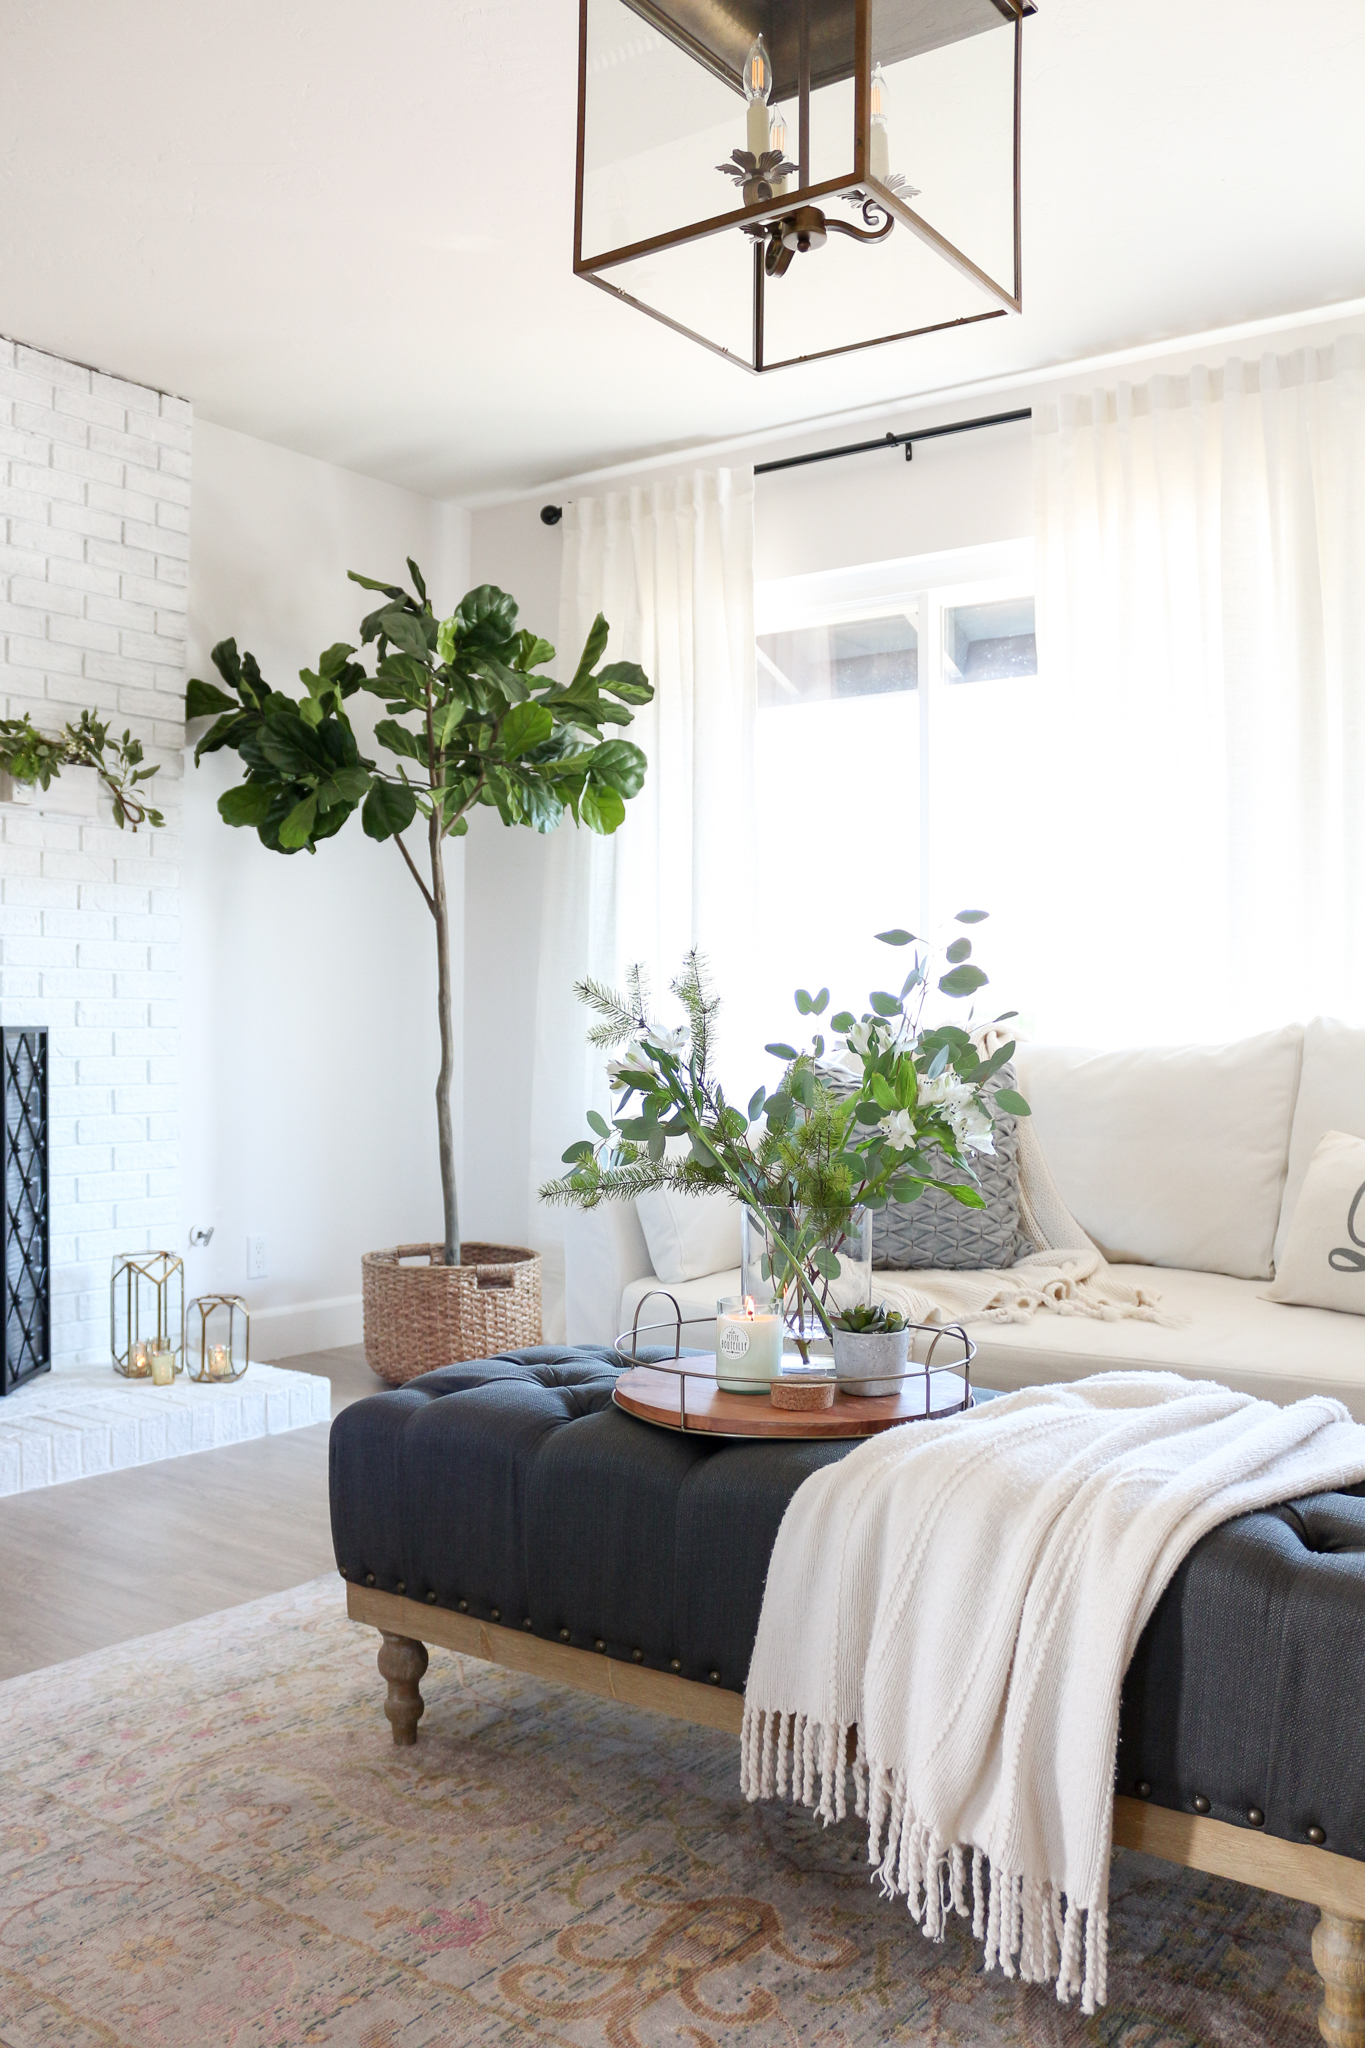 Hygge Style Living Room: Cozy Hygge Modern Farmhouse Style Living Room